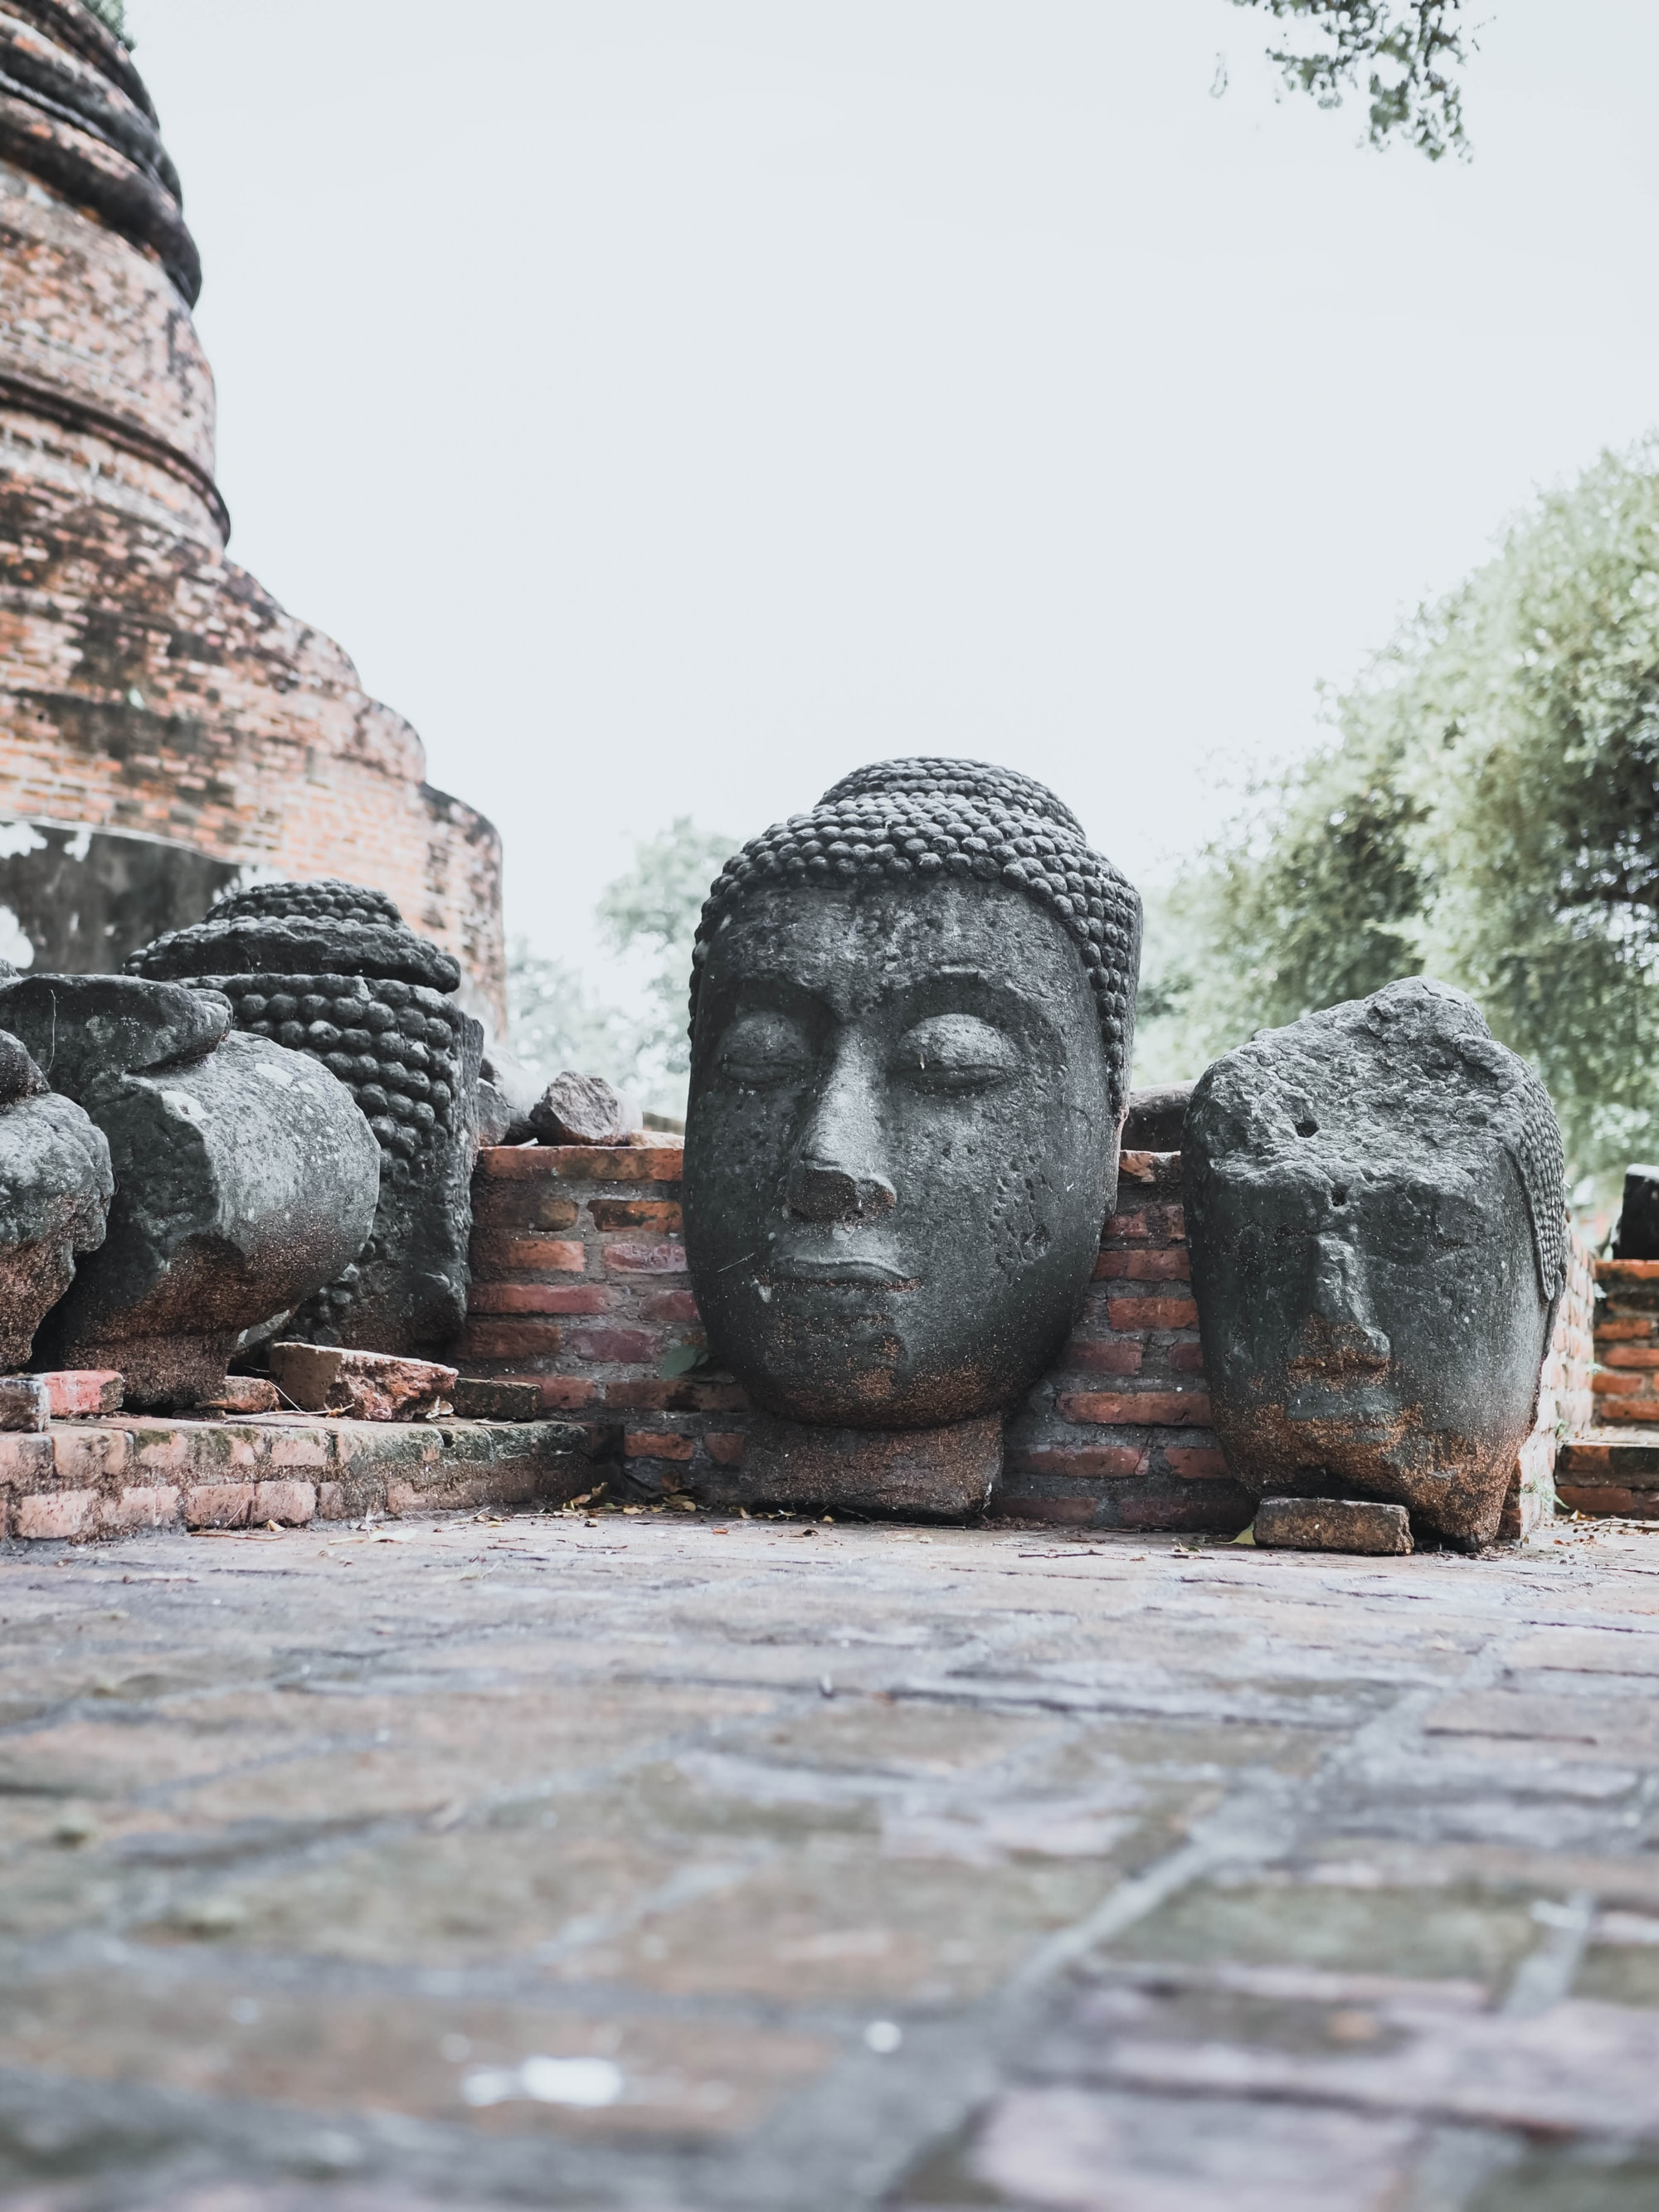 Are Buddha Heads Disrespectful?